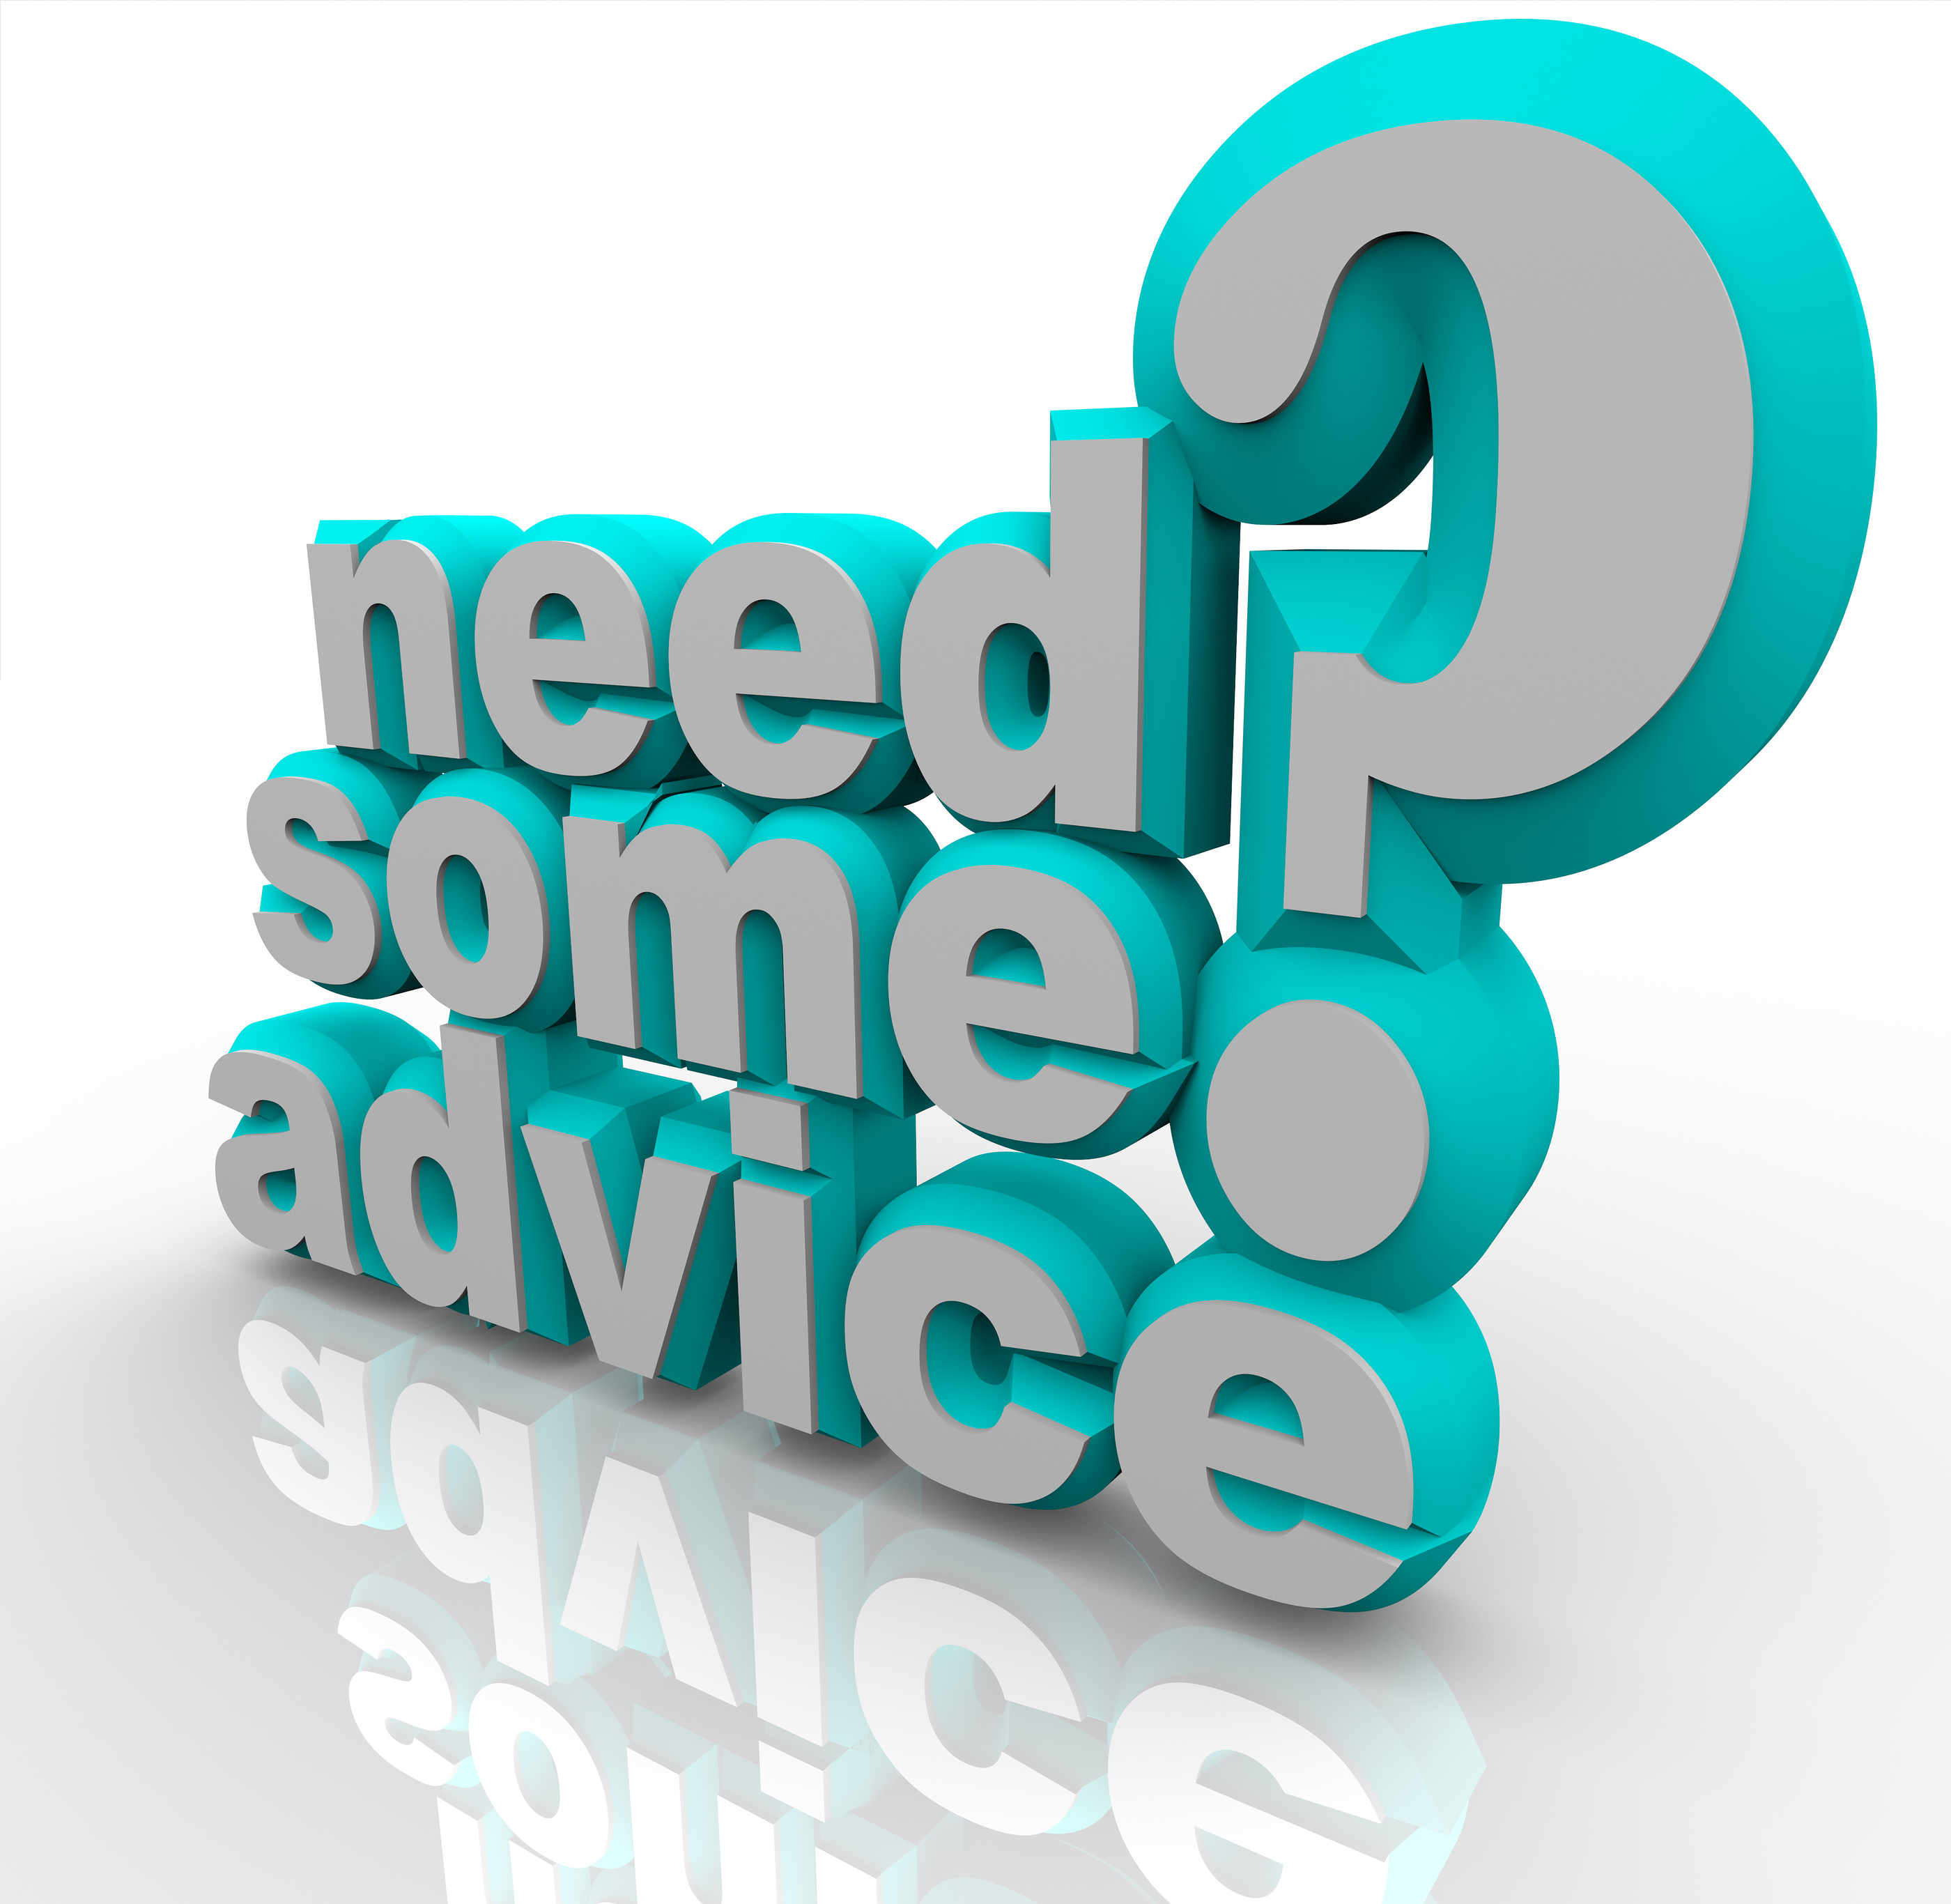 The words Need Some Advice in 3D words and a question mark, asking if you require help, assistance o